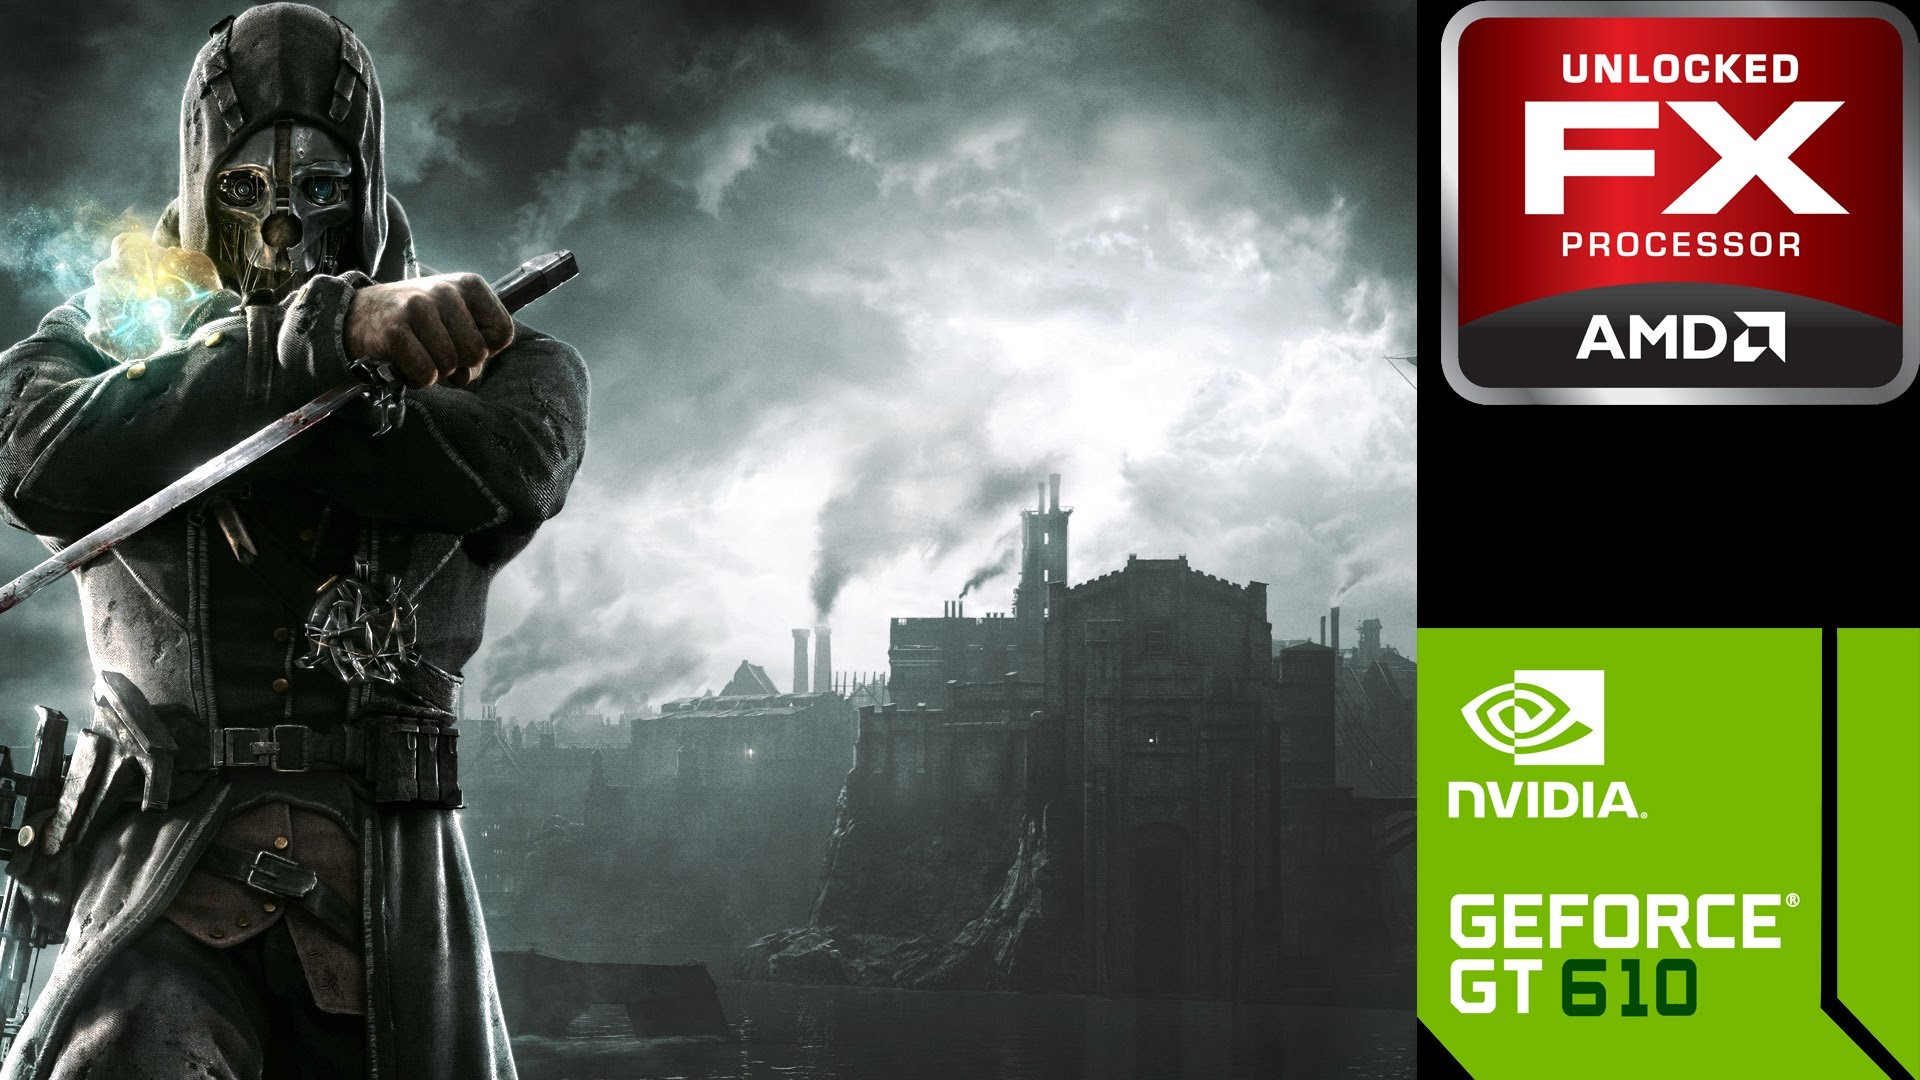 Dishonored – AMD FX 6300 + NVIDIA GT 610